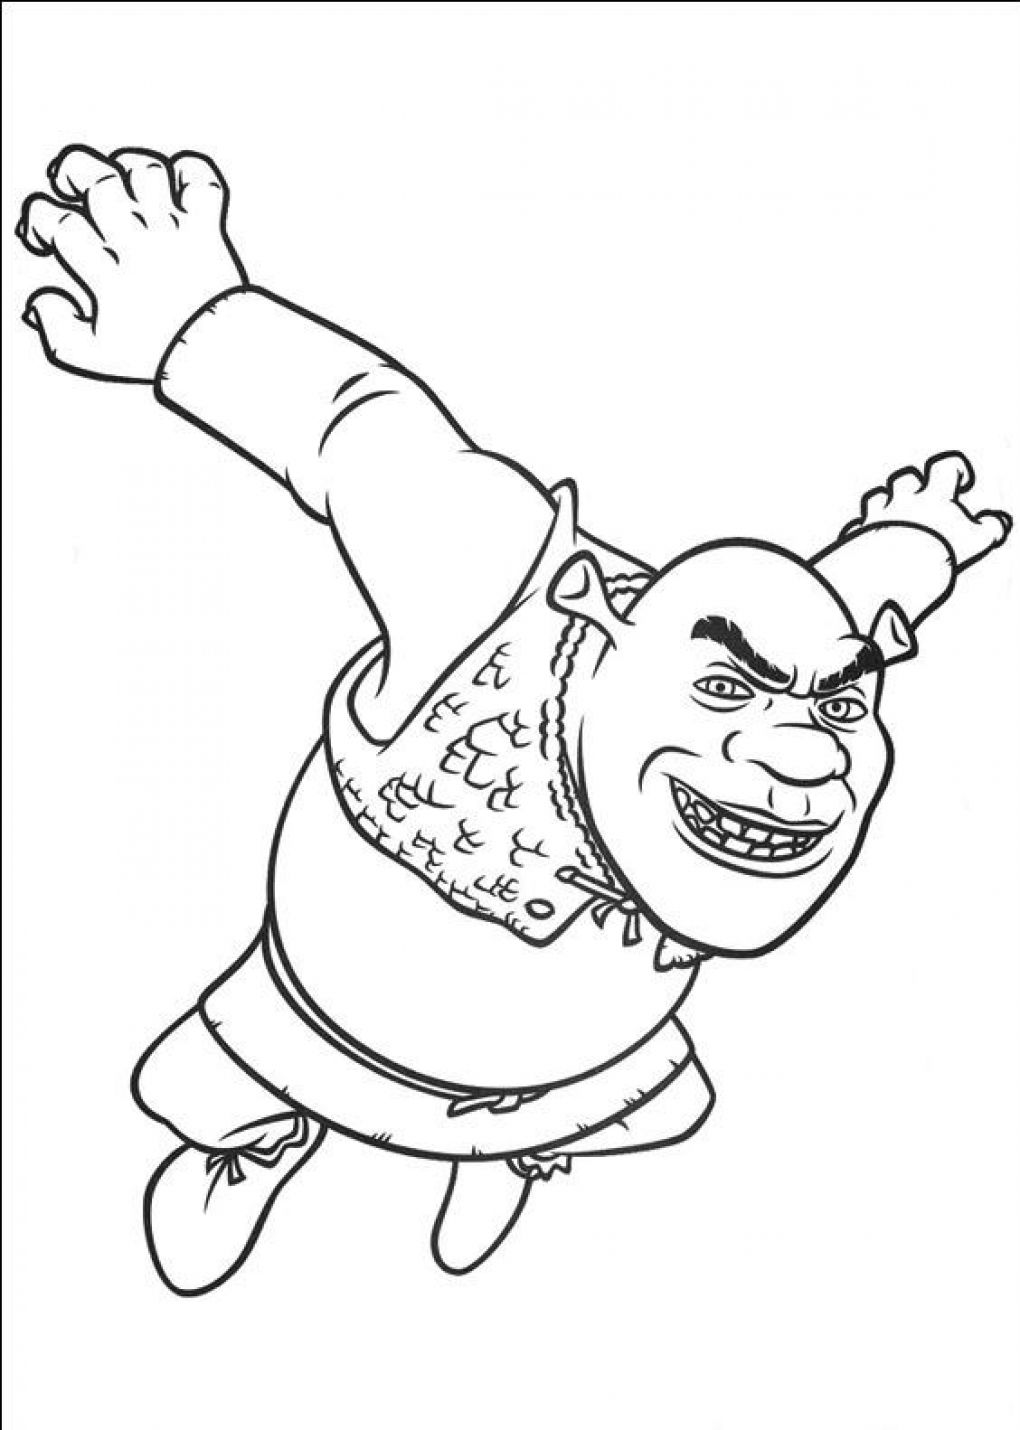 Free Shrek 3 Coloring Pages, Download Free Clip Art, Free Clip Art ... | 1430x1020